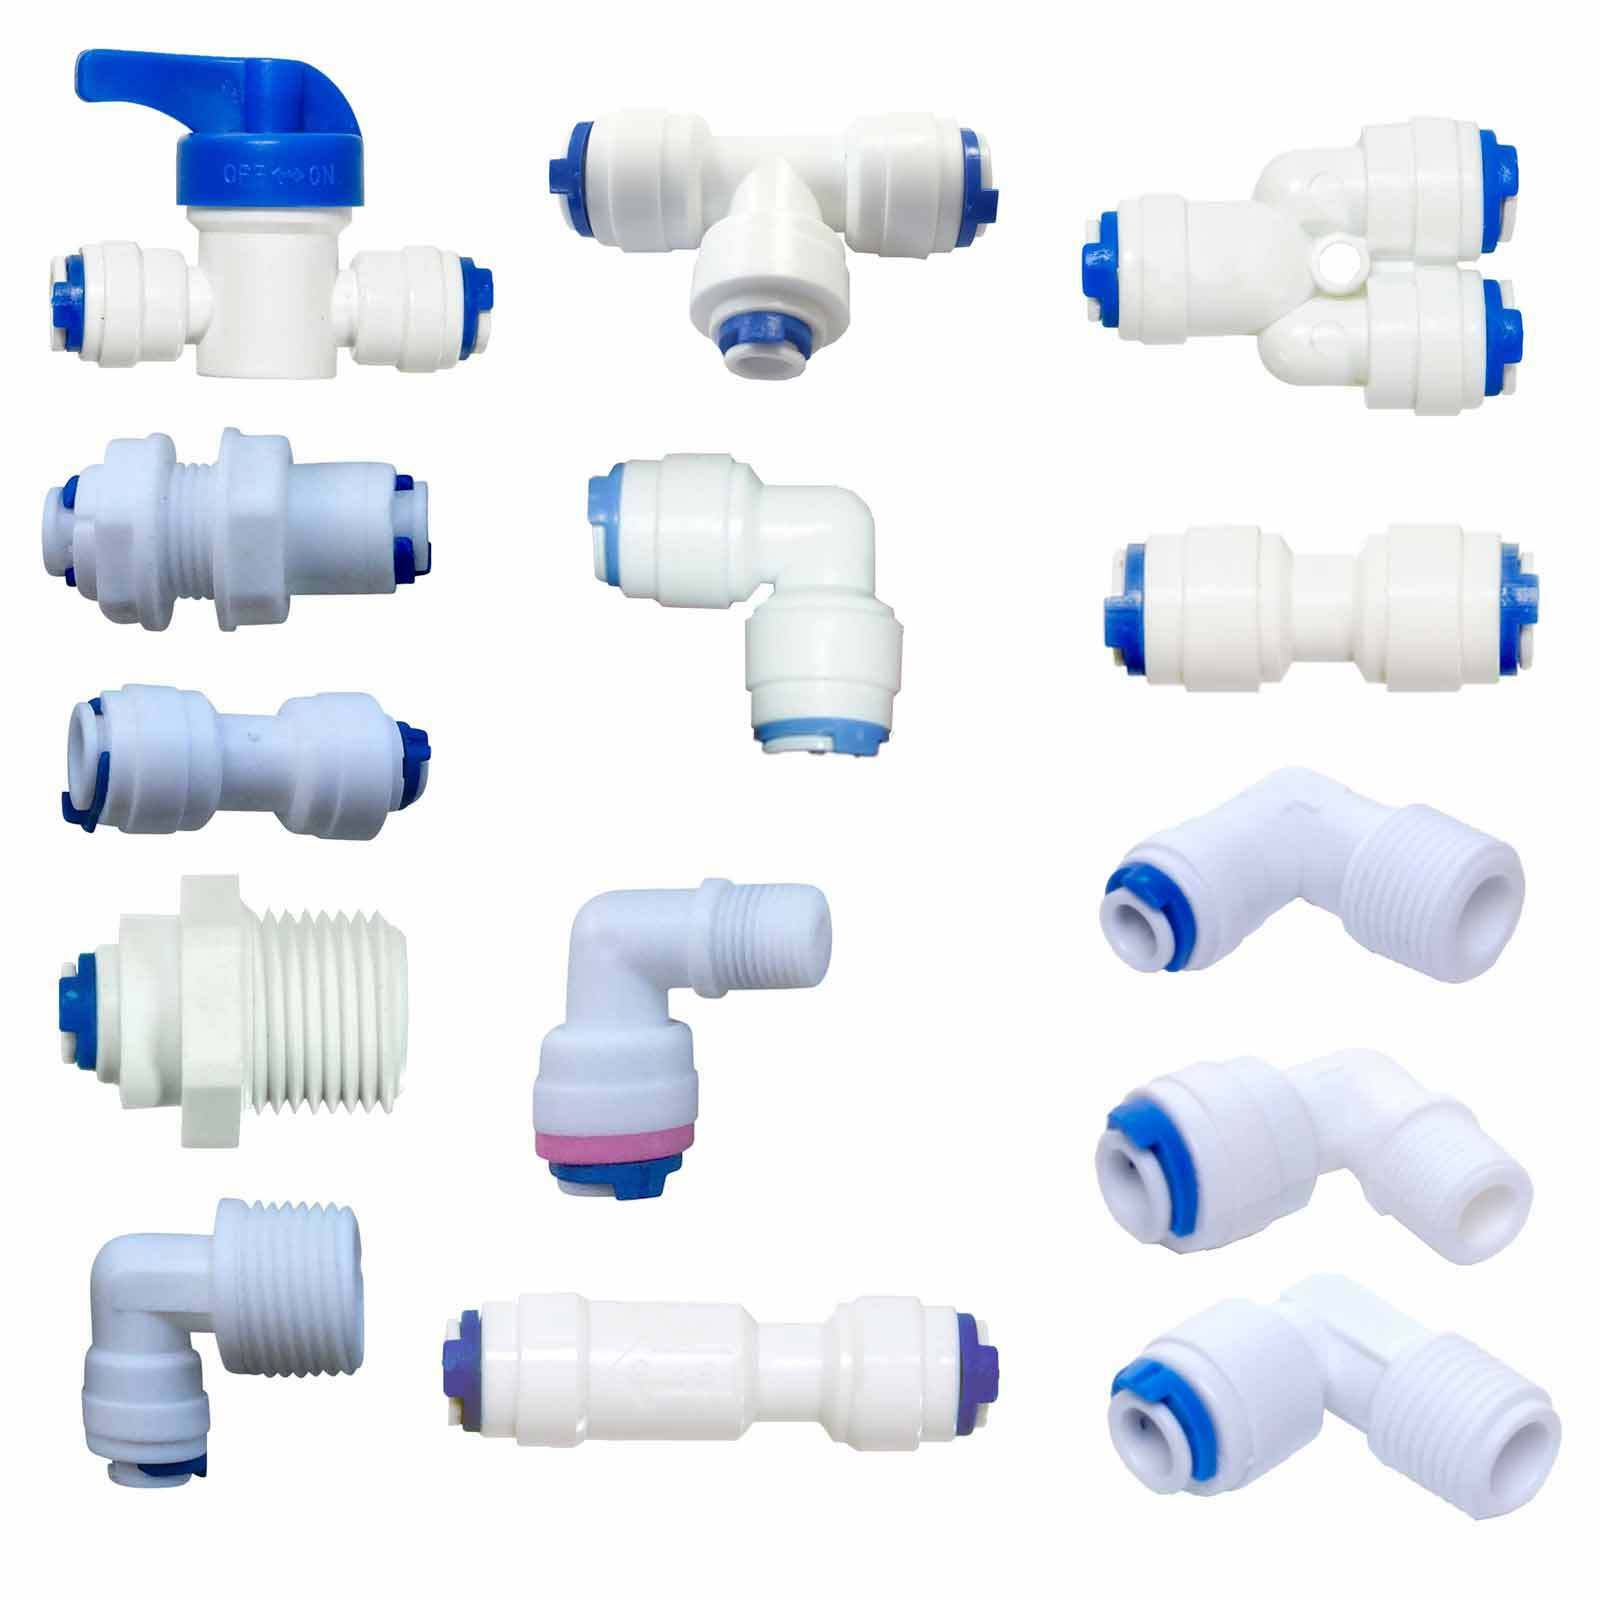 "1/4"" Push Fit Pipe Fittings - American Fridge and RO Unit Elbow, Tee Piece etc."